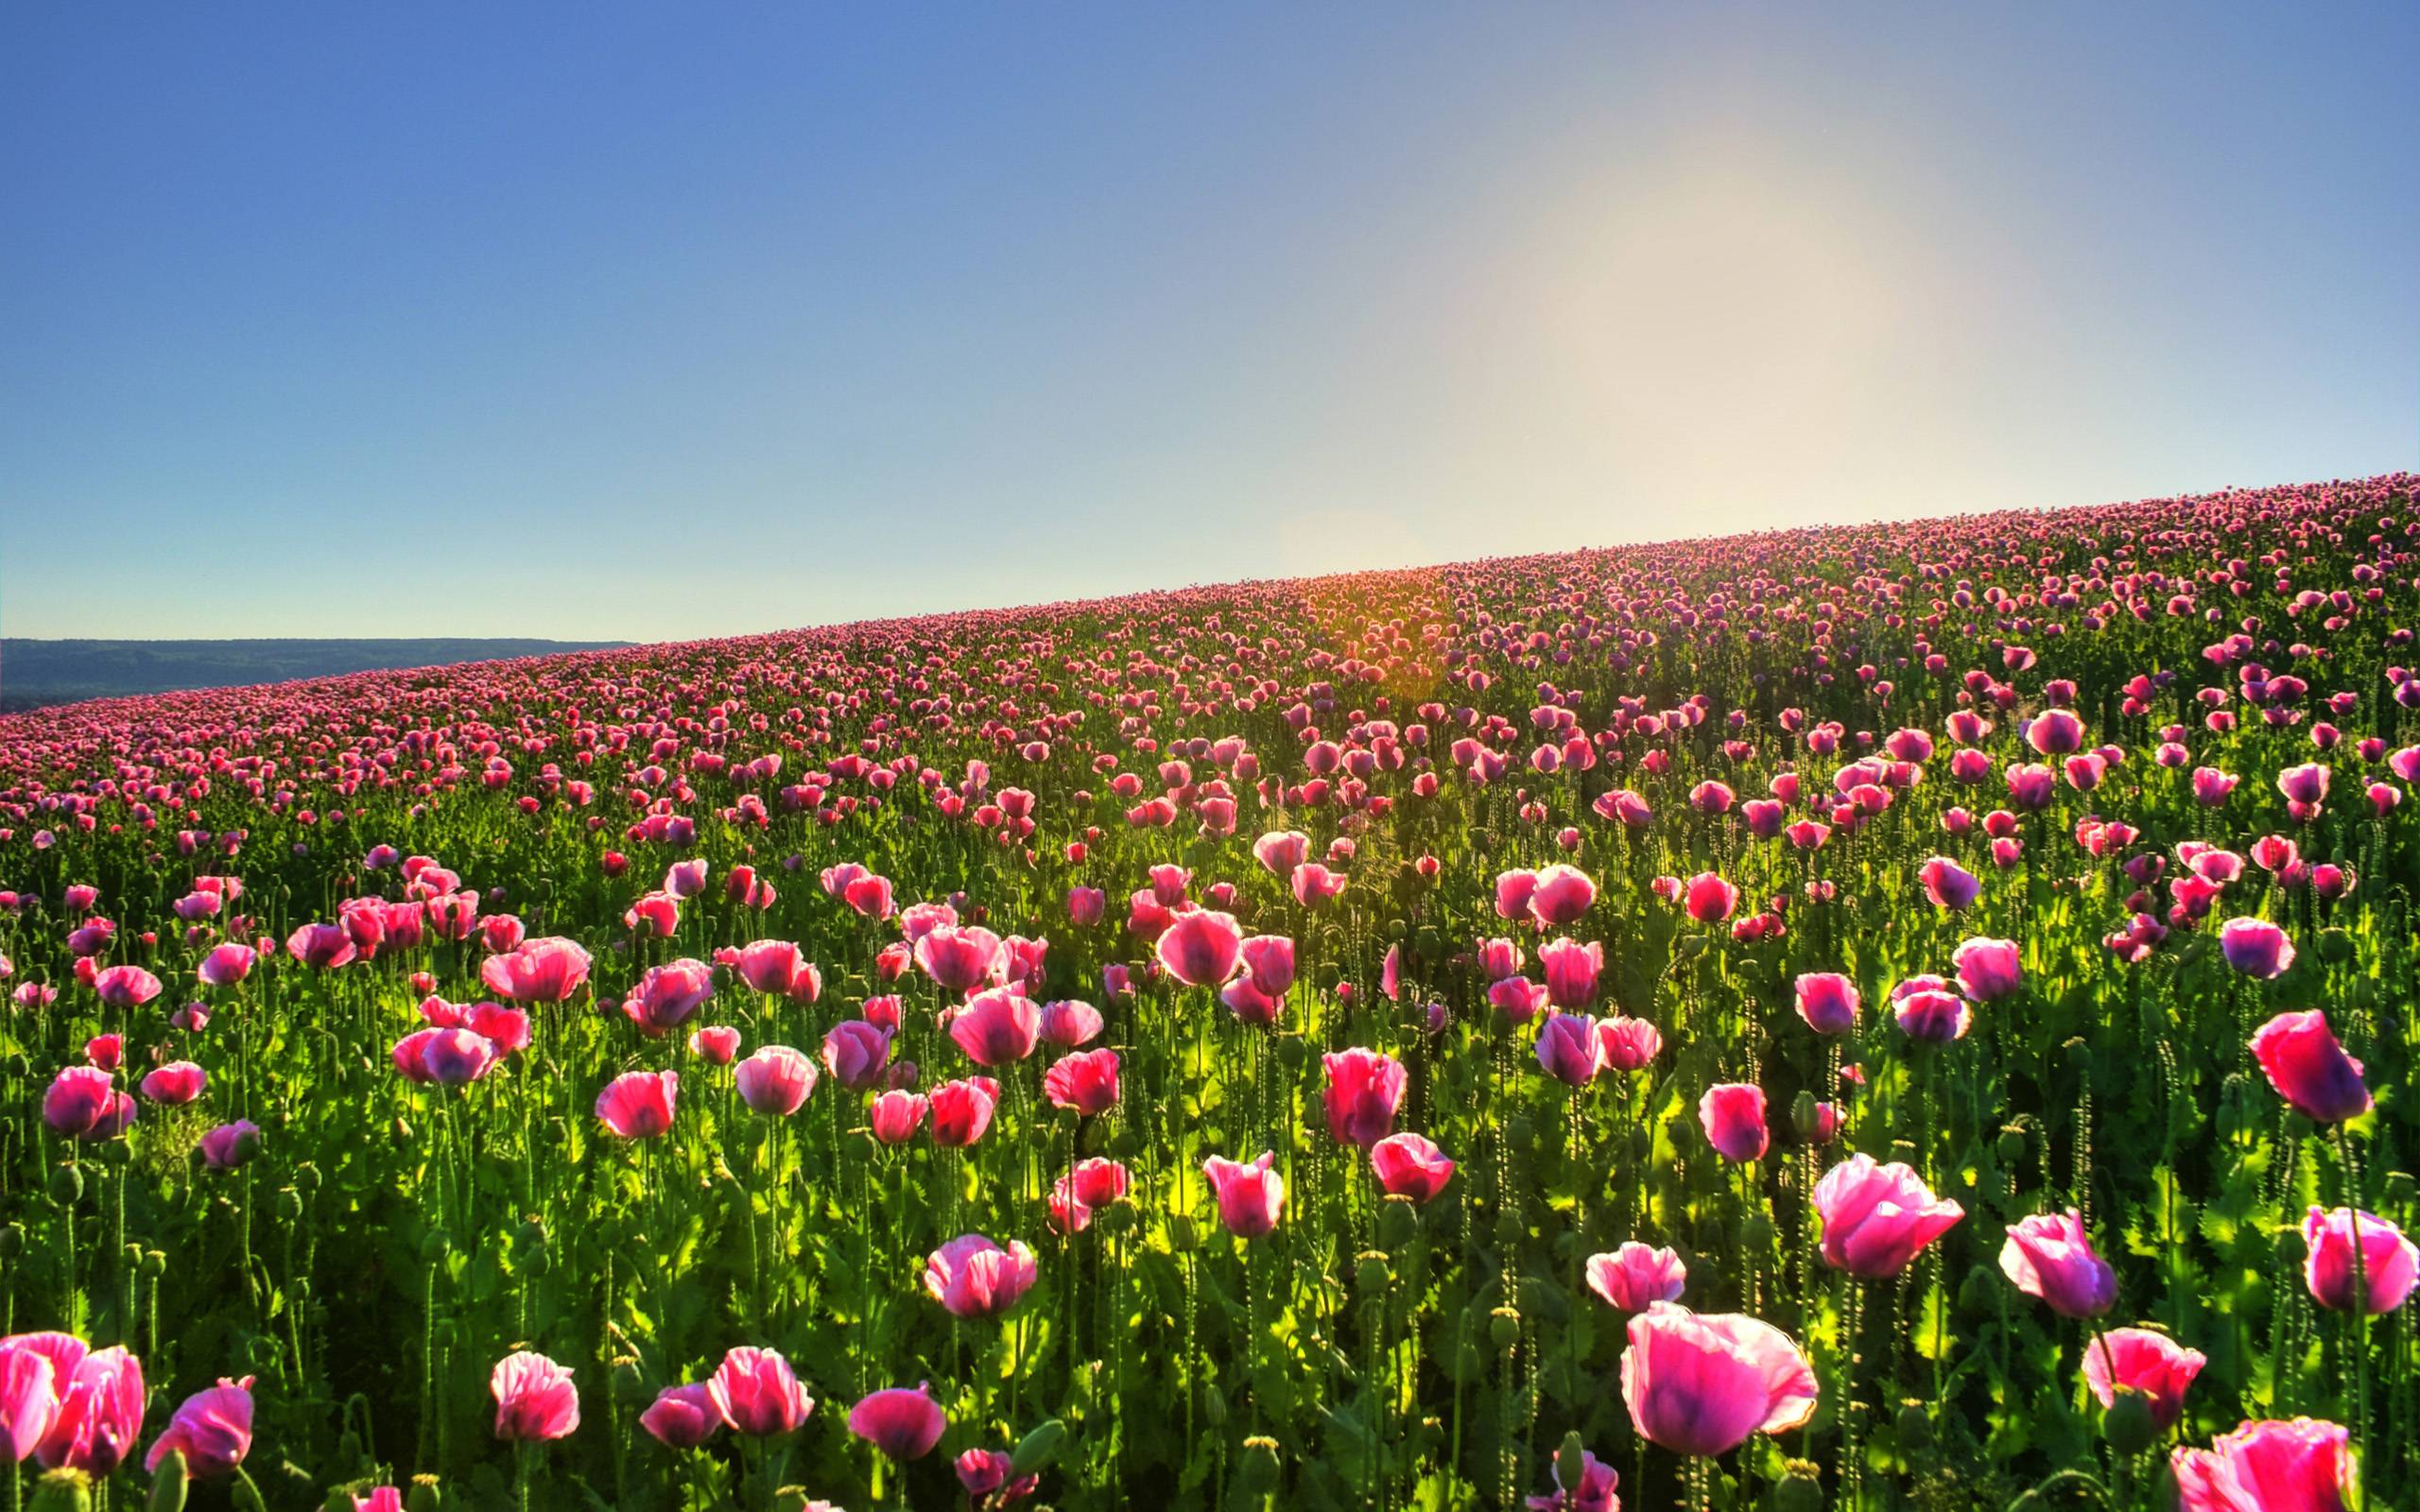 Flowers Easy On The Eye Images Flowers Hd Hits Picture Pink. Flower Gardens  Wallpapers Wallpaper Cave